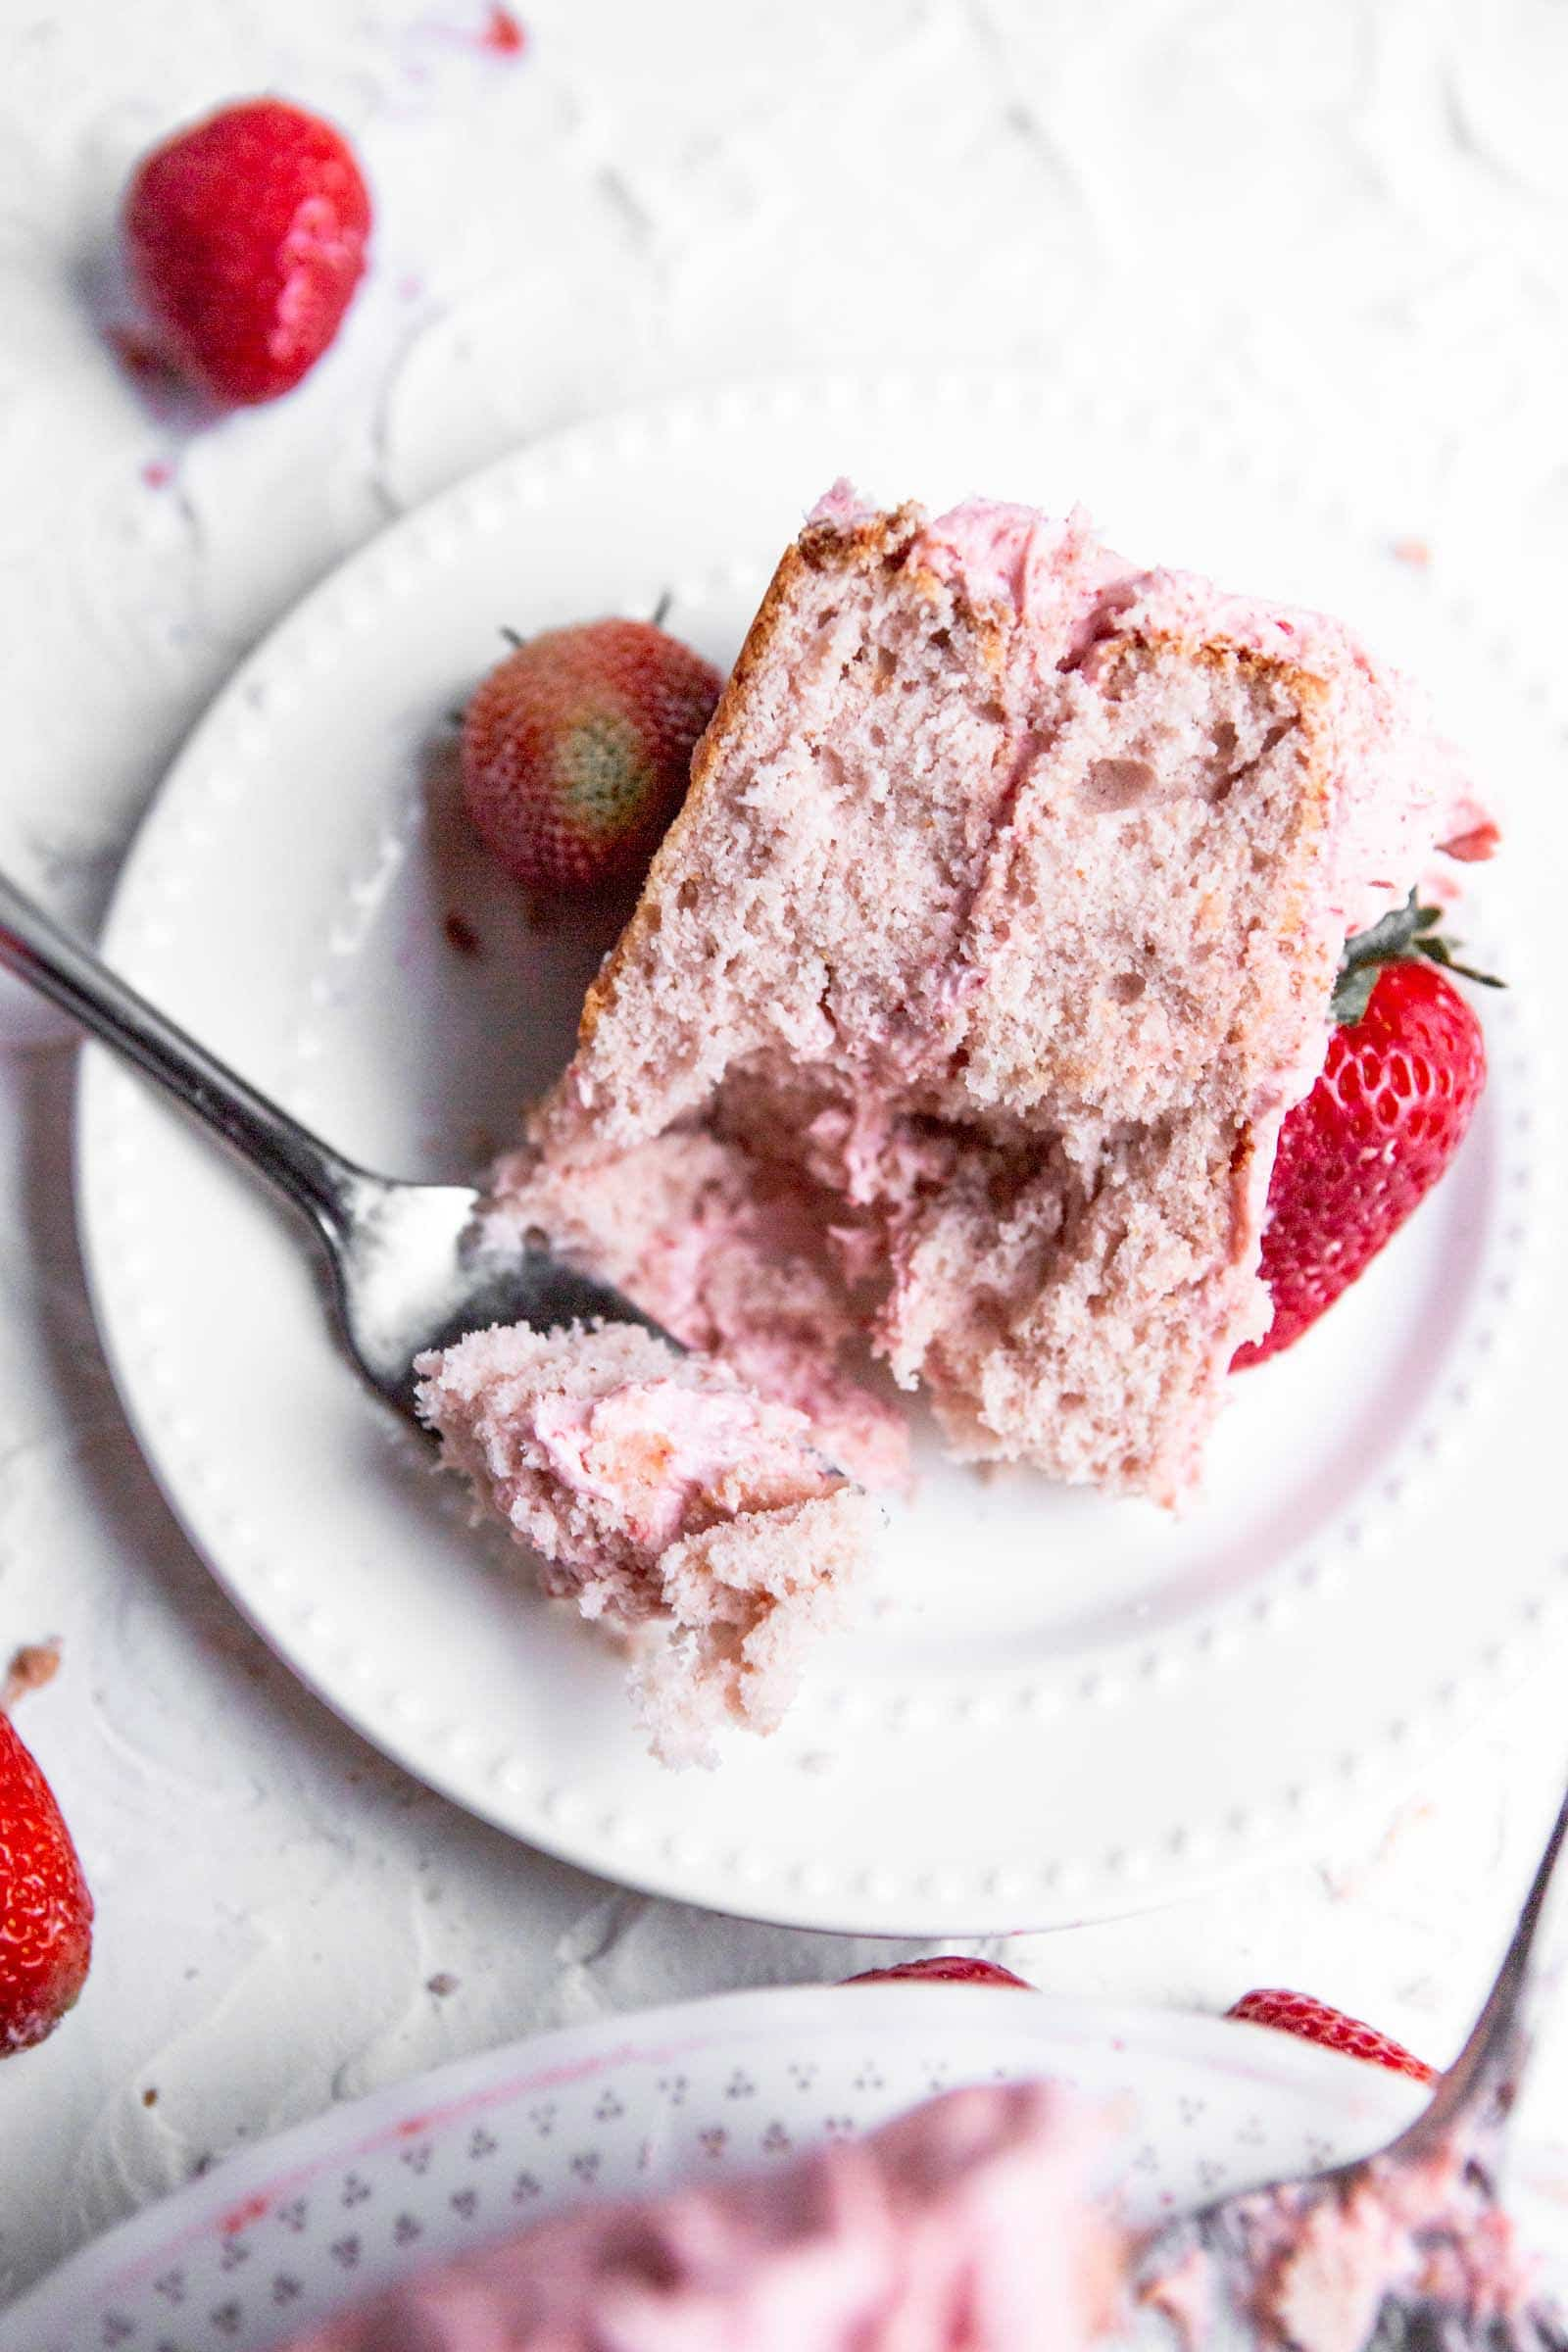 a slice of a two layer pink cake on a white plate with a fork and strawberries on the side.